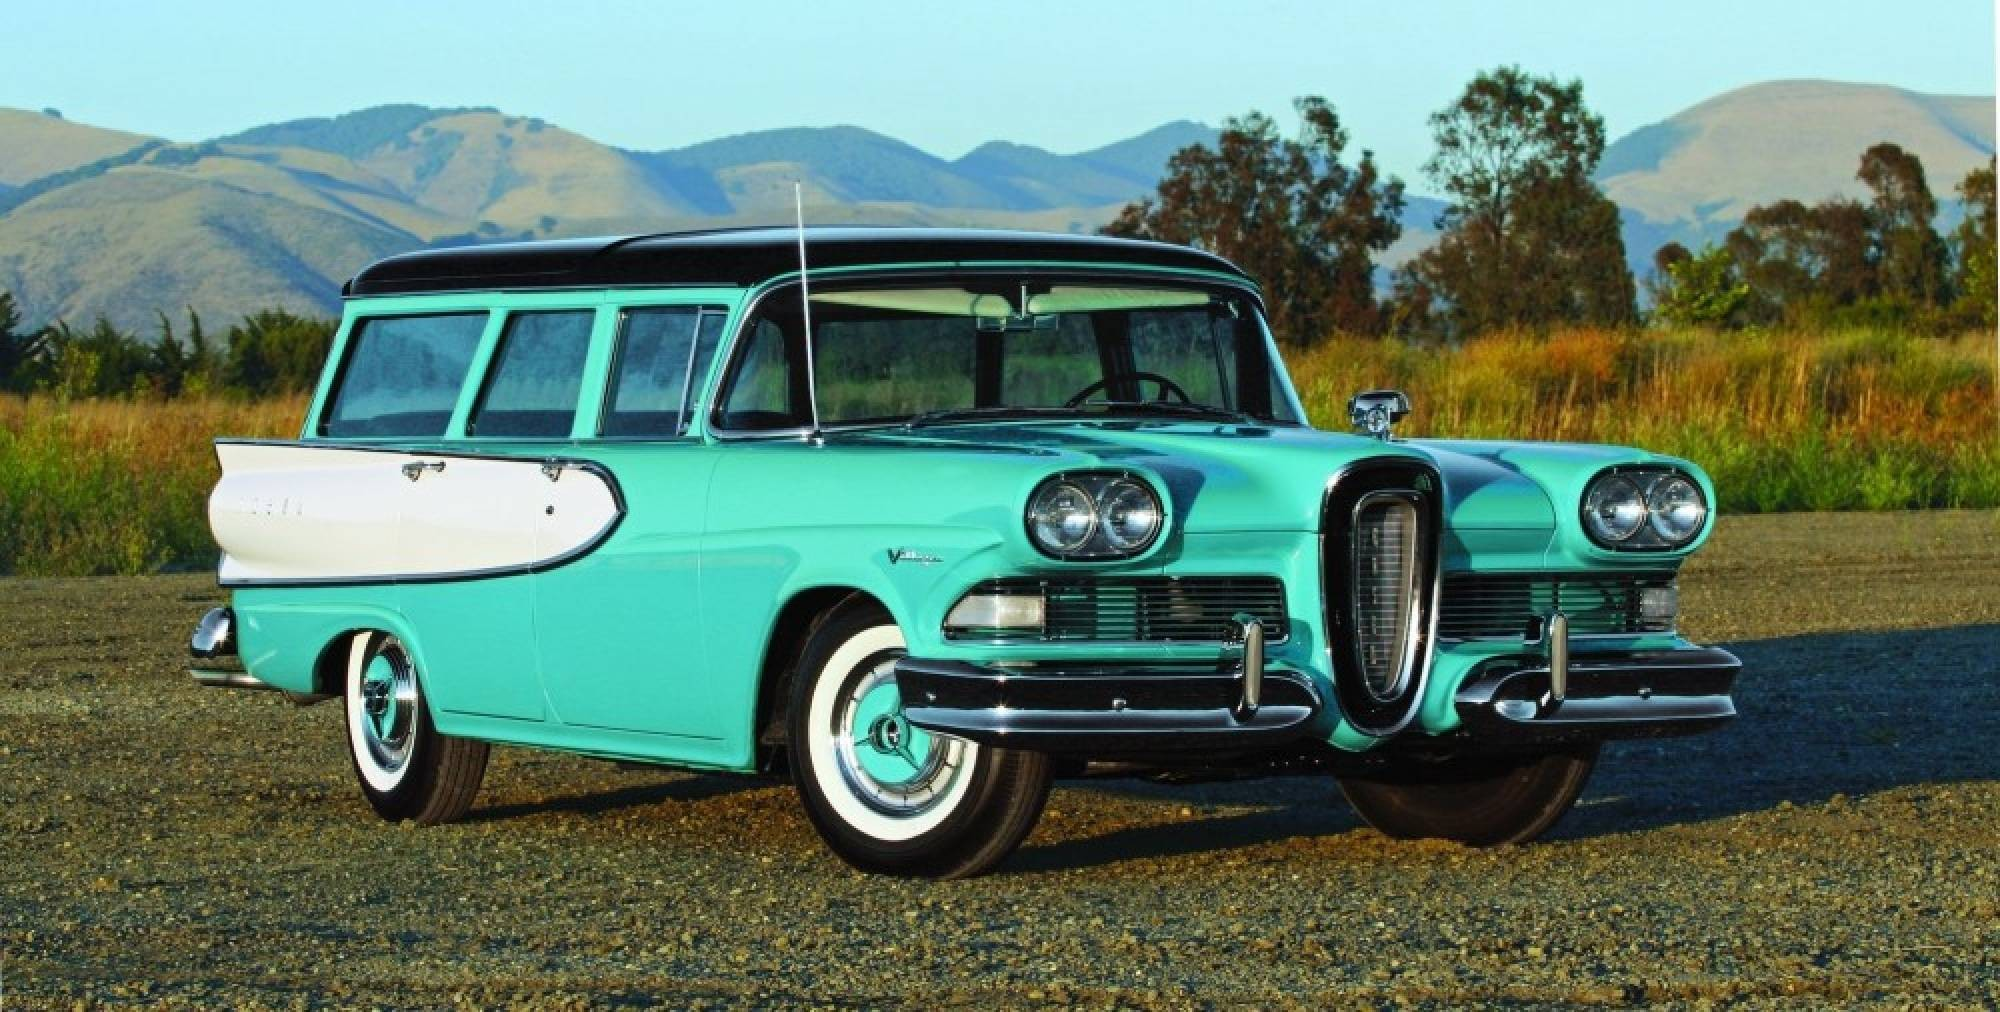 Uk Car Auction Search All Auctions Trunk Locks Wiring Diagram Of 1958 Ford Edsel And 59 Lincoln Villager 1960 A 1959